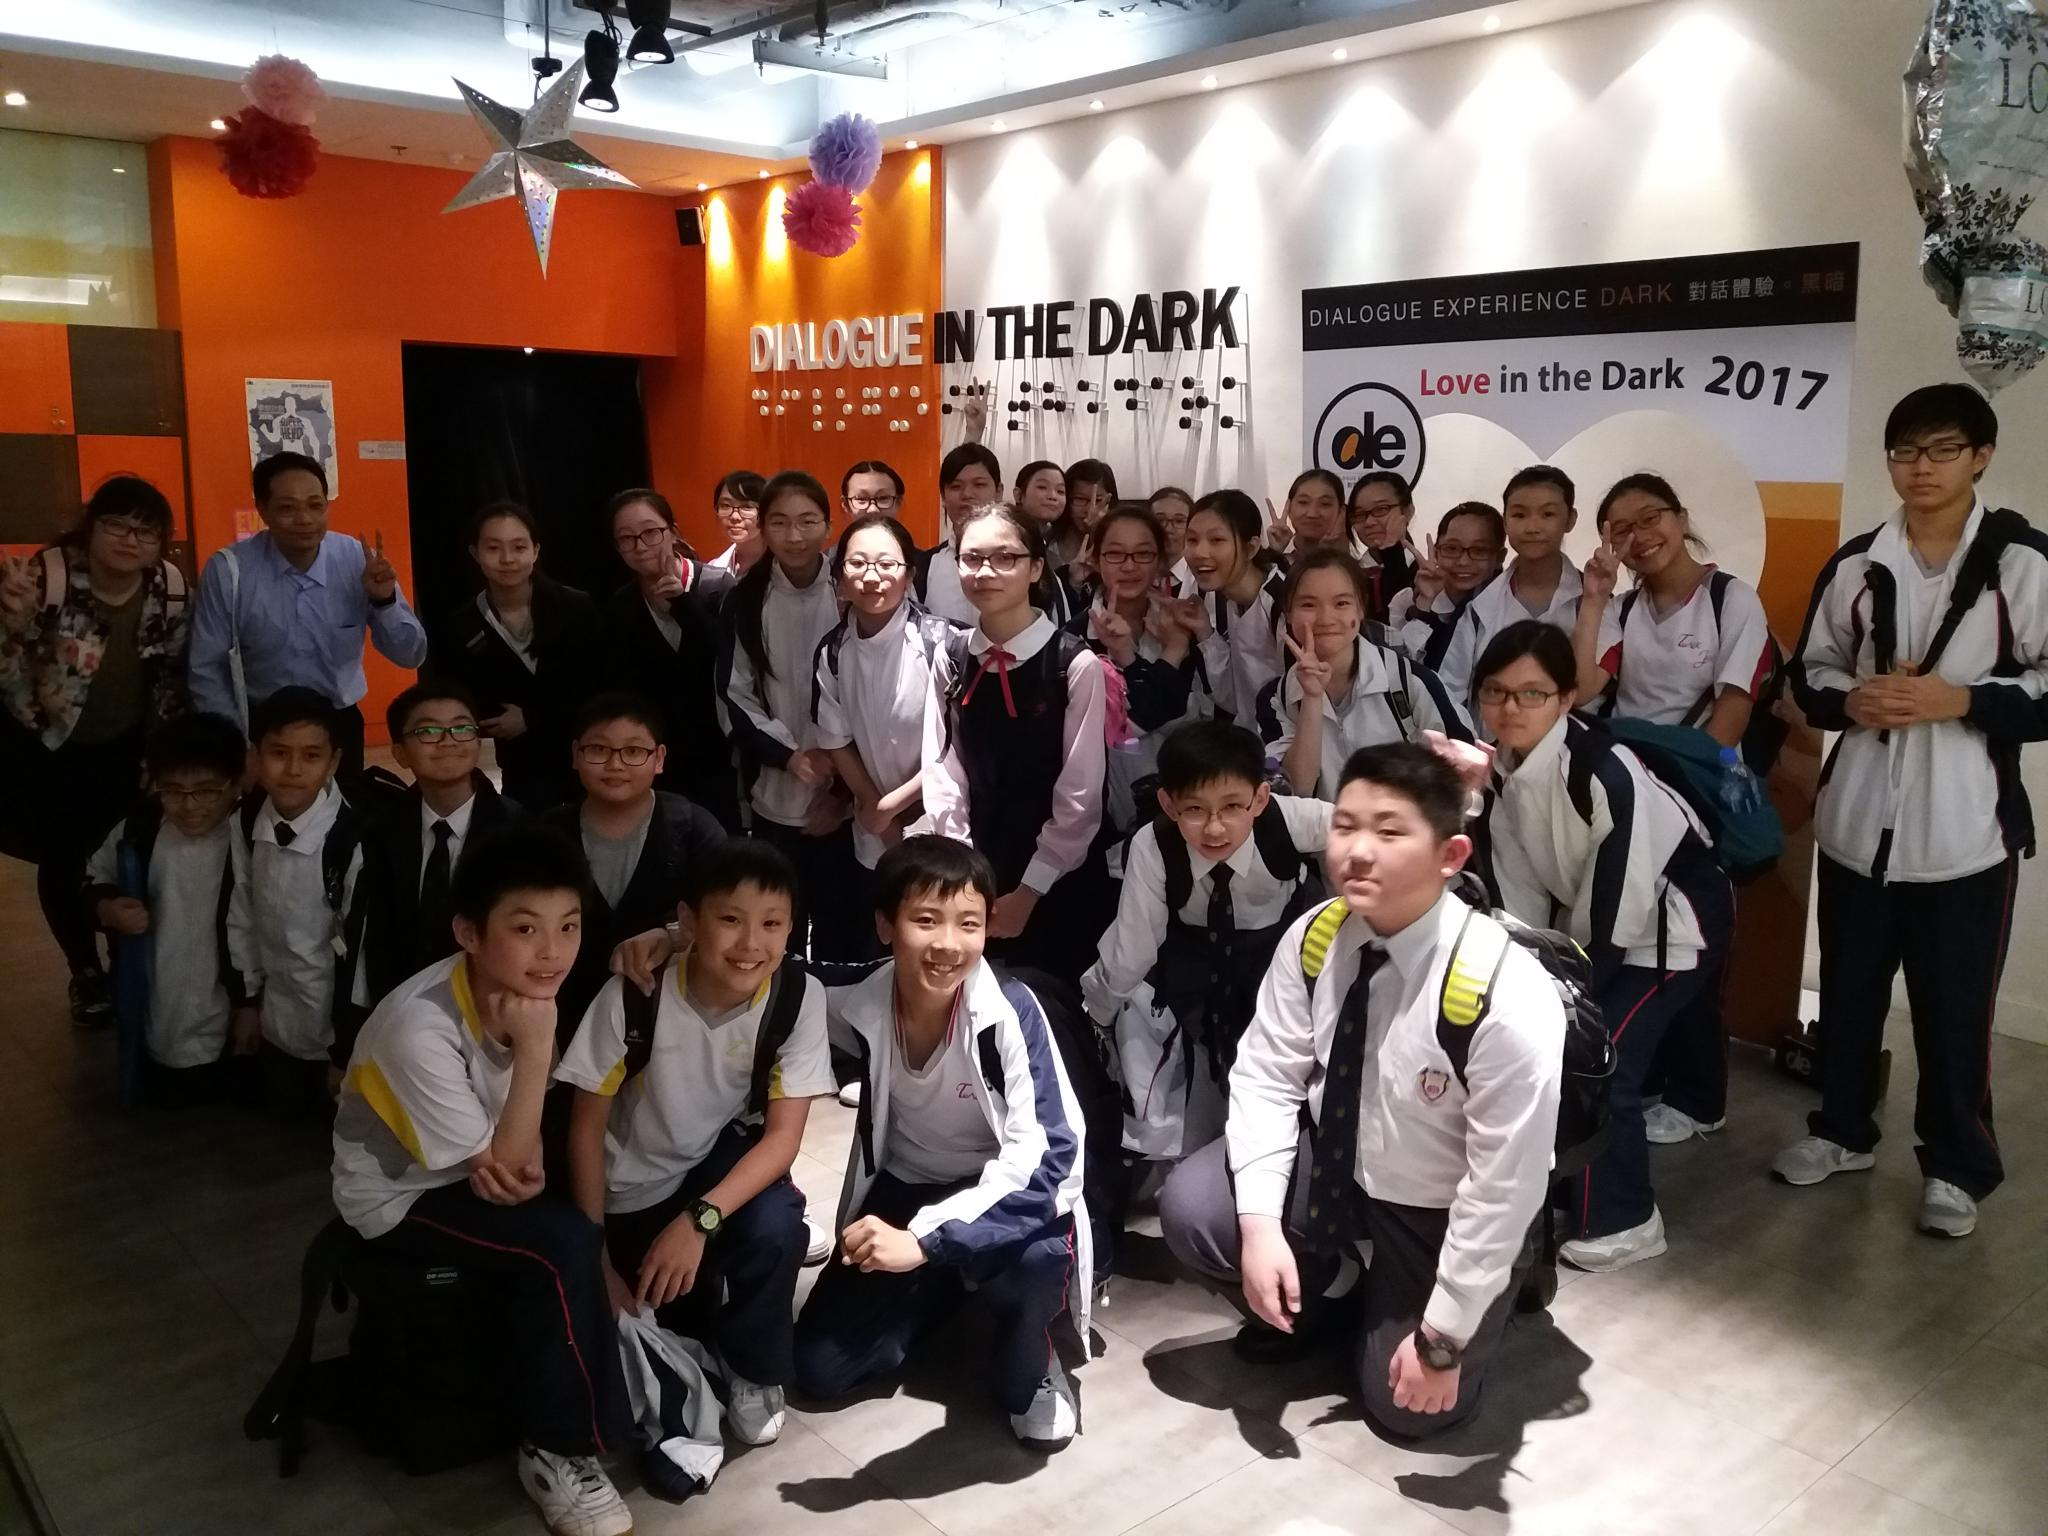 Our teachers and students took a group photo at the entry of Dialogue in the Dark  Exhibition Centre